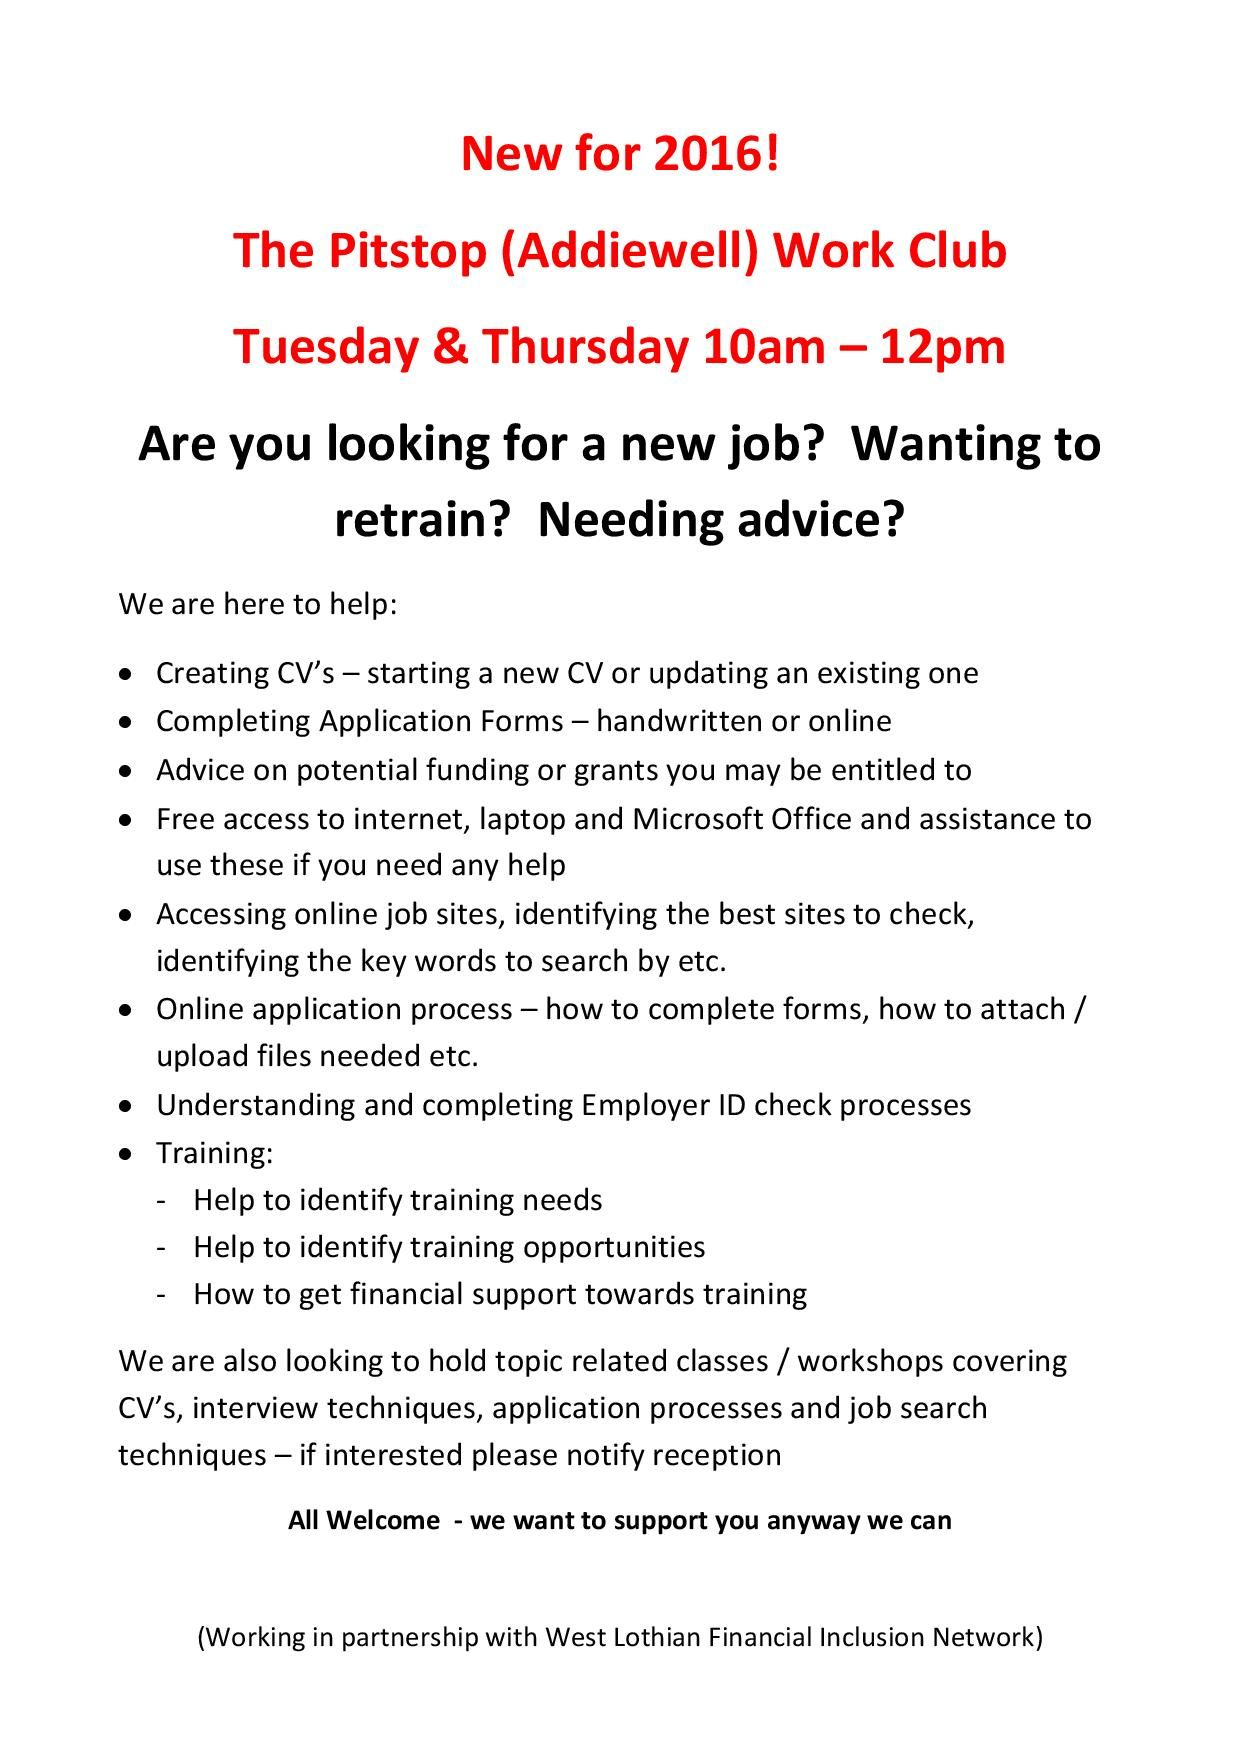 The pitstop addiewell work club tuesday thursday 10am